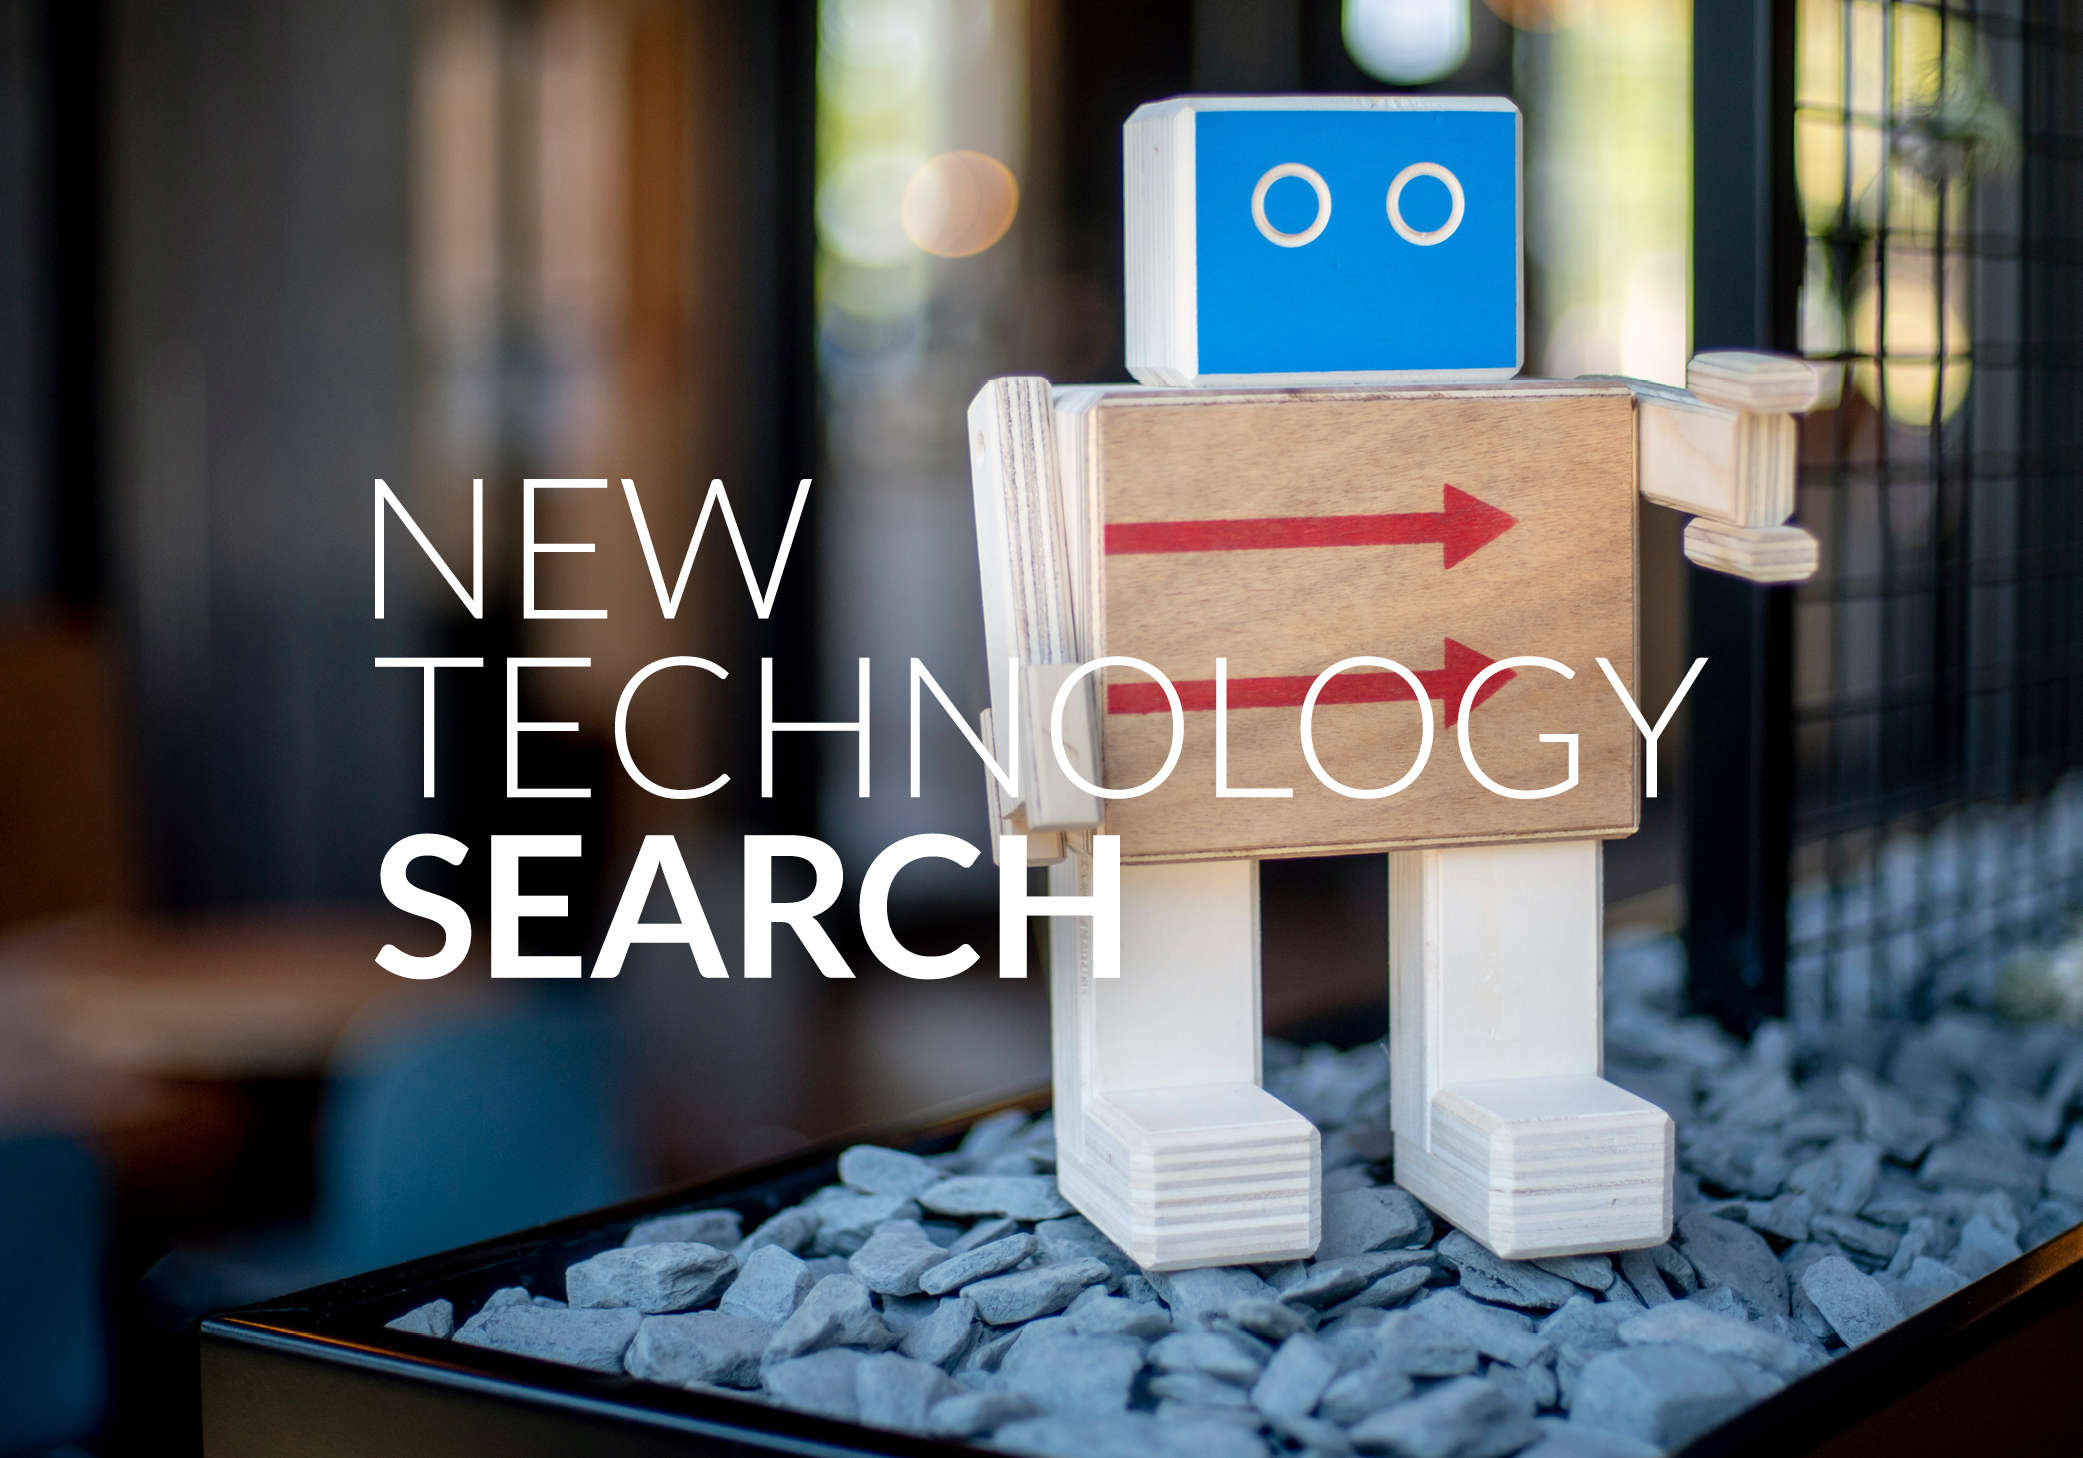 New Technology Search